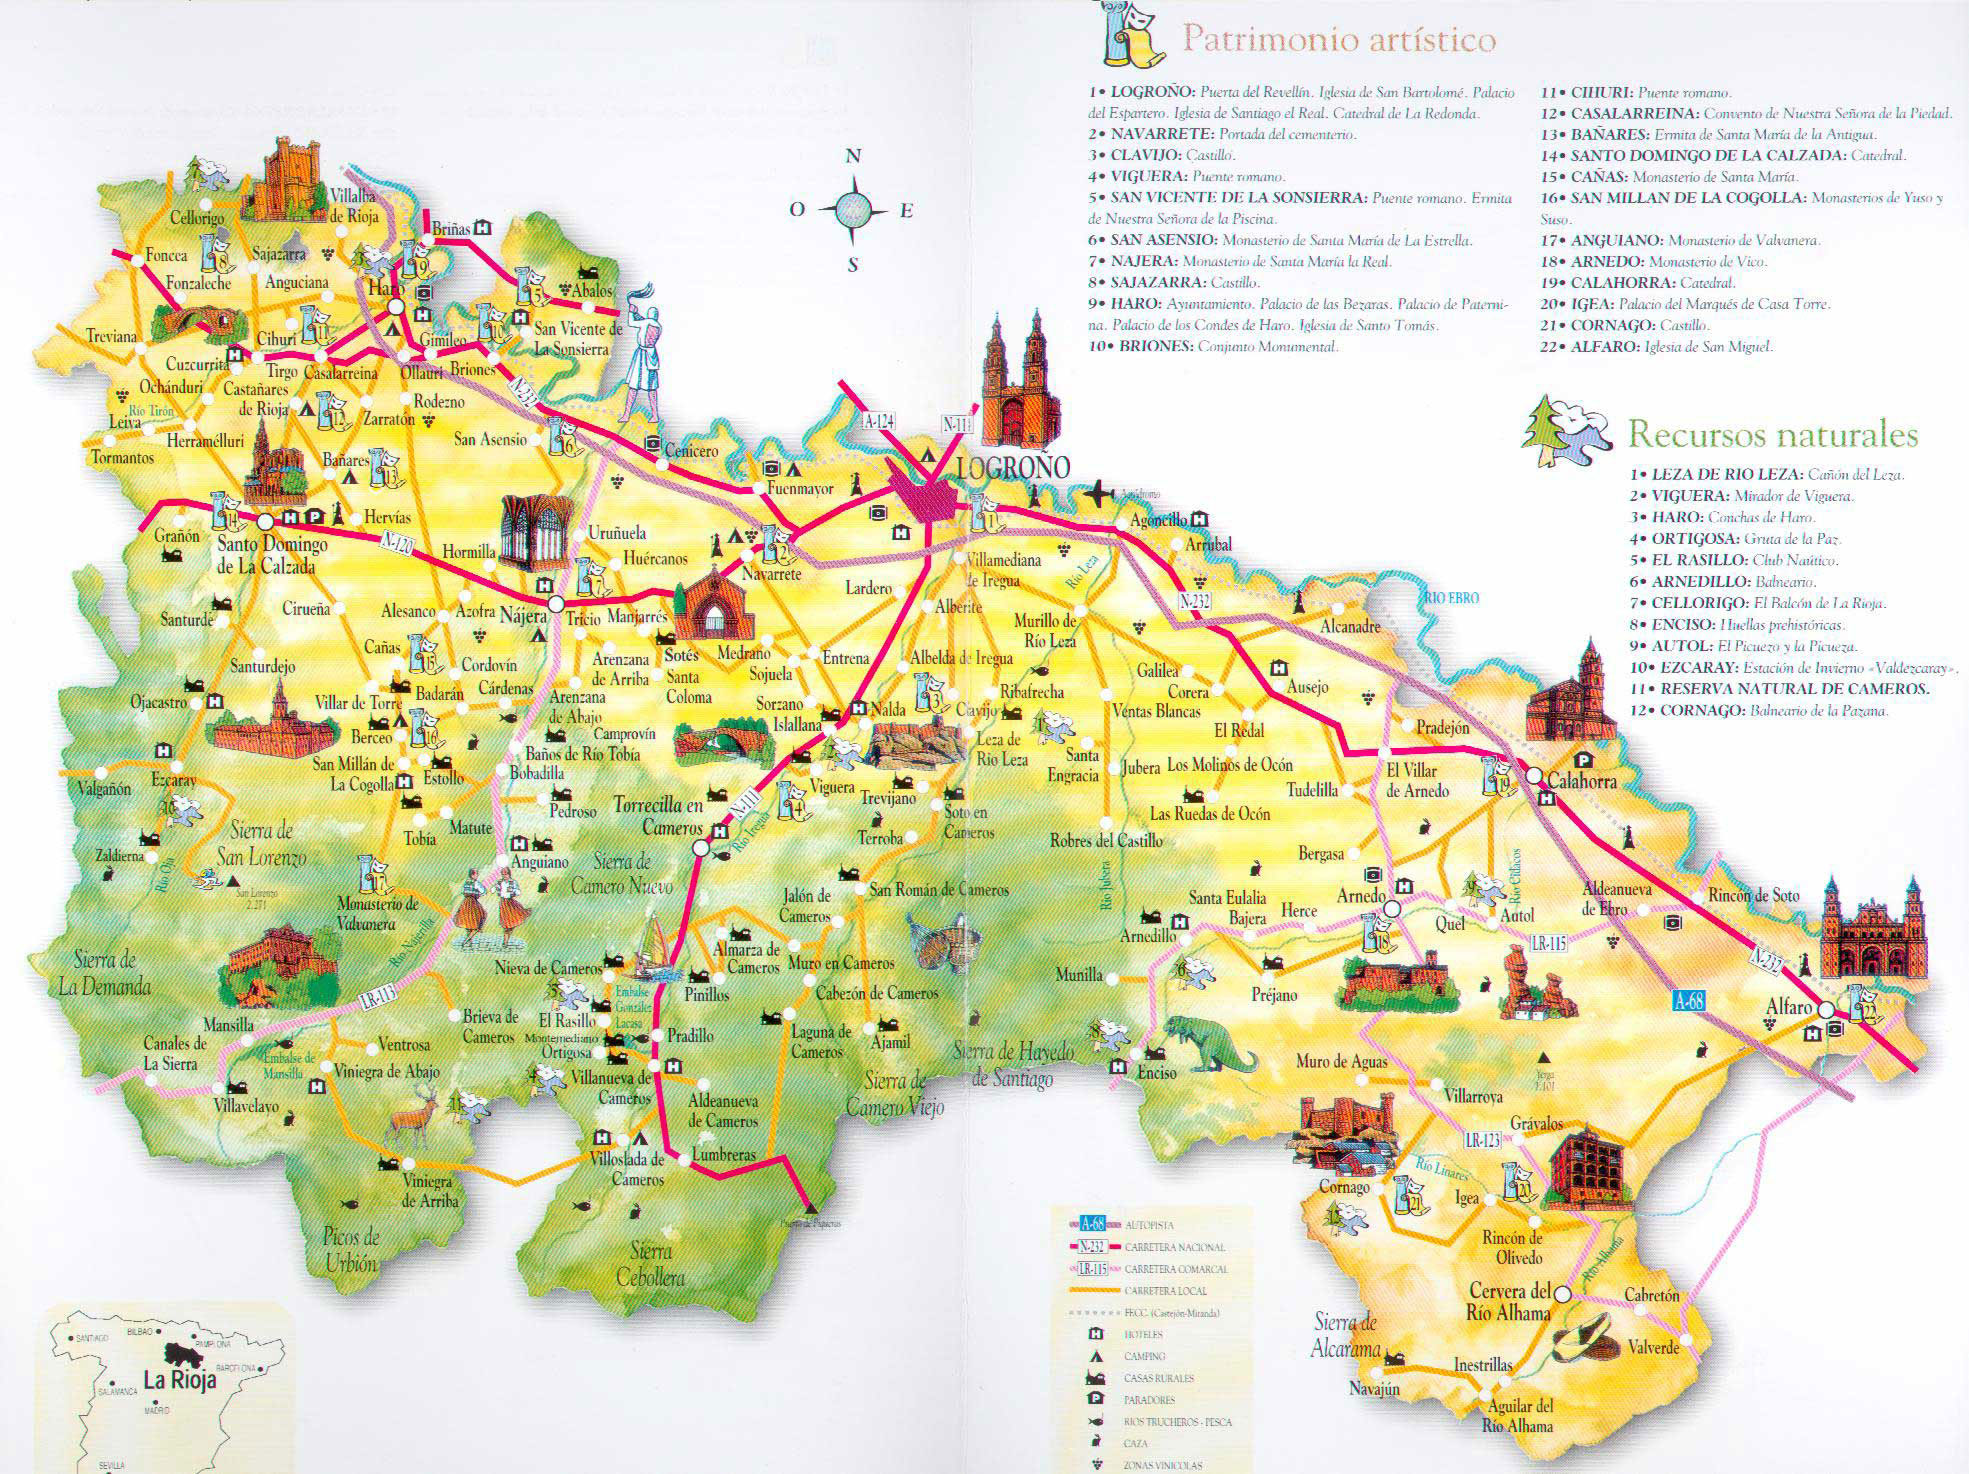 La Rioja tourist map